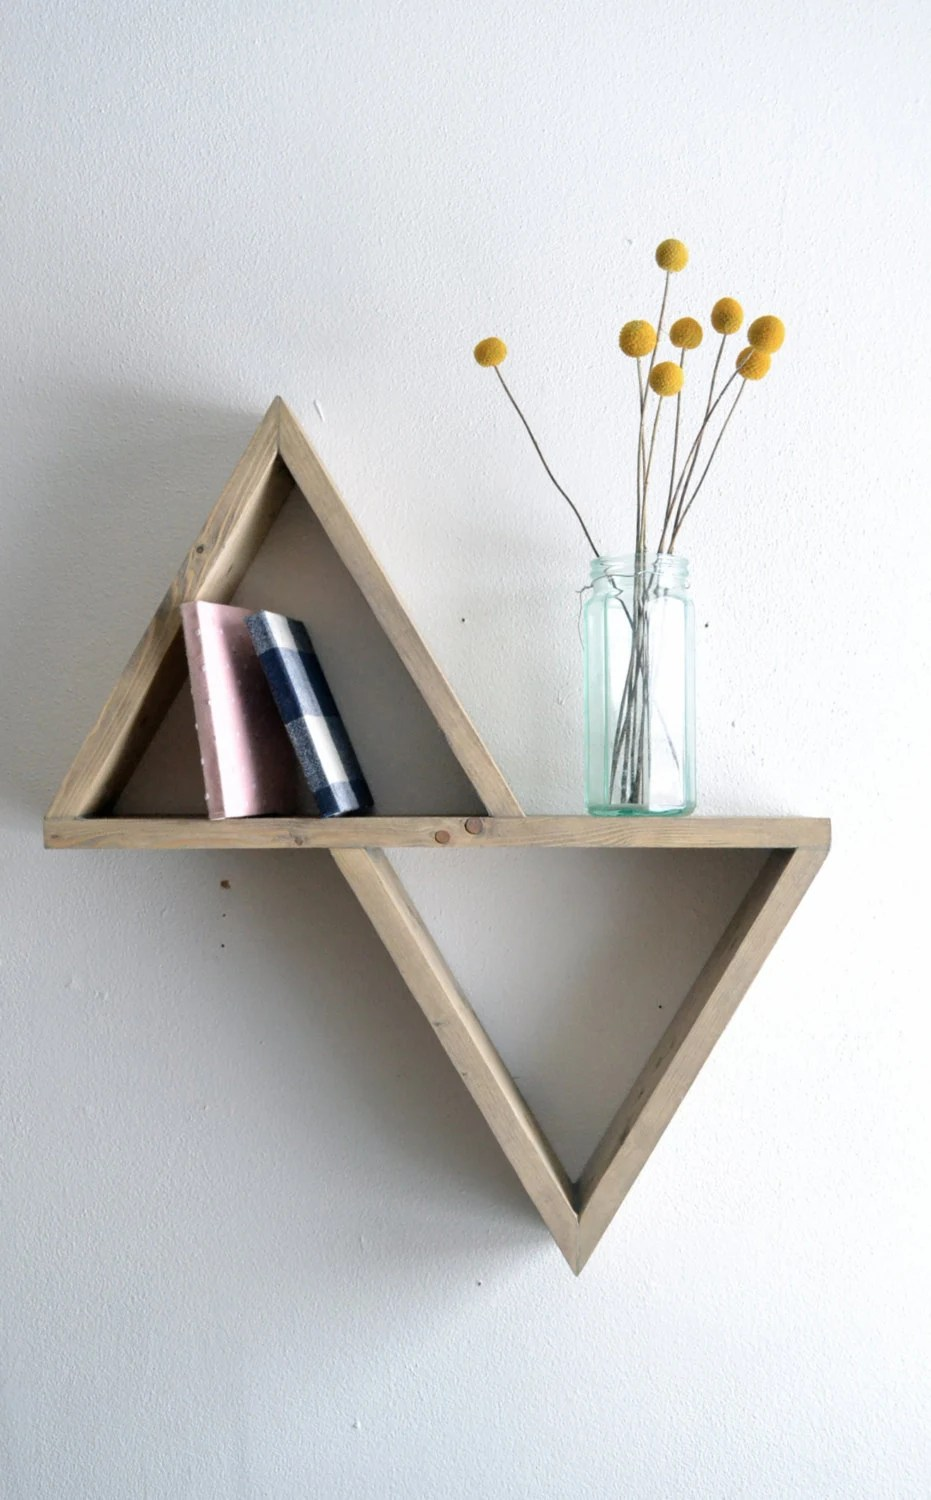 Geometric Shelf II - The807